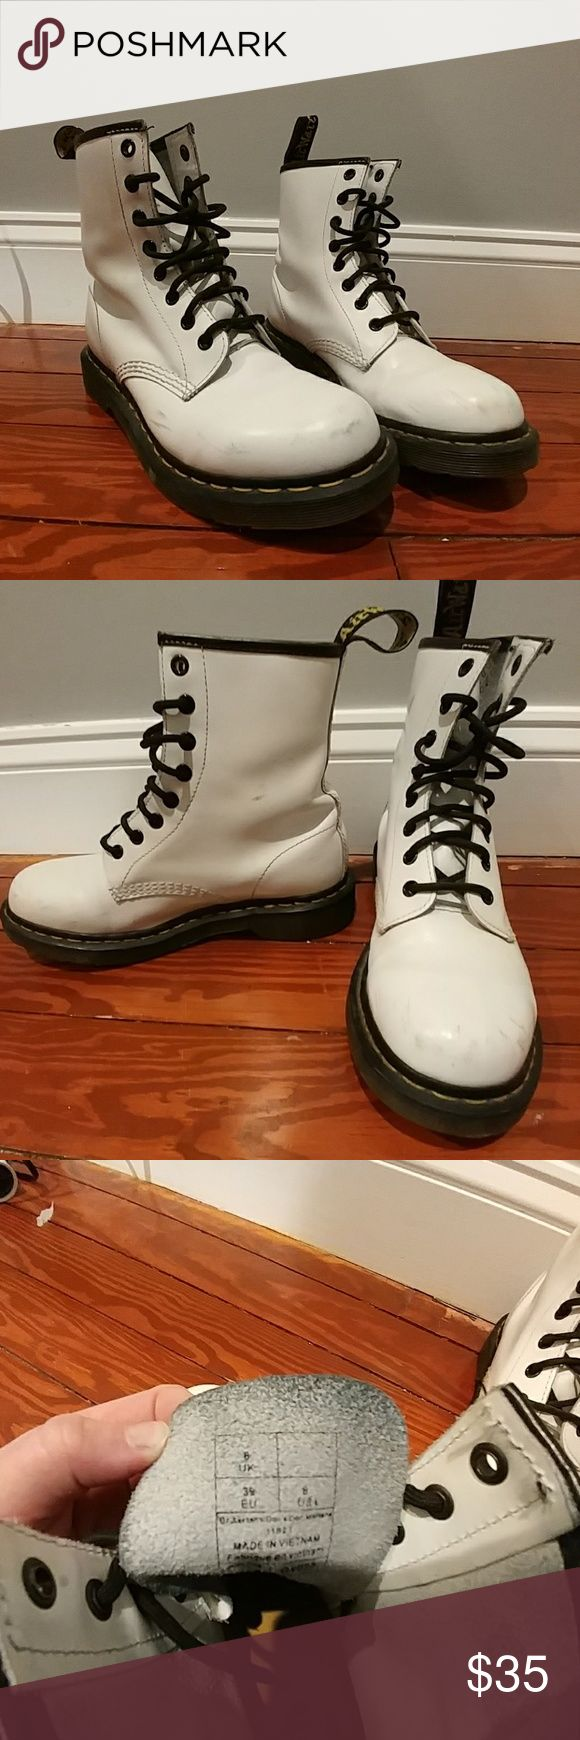 White Dr. Martens Size US 8 White Dr. Marten boots. US 8 UK 6. Some scuffs on toe and indents on back of ankle from wearing. Worn a few times in winter conditions. Great snow boots that are stylish and warm. Inside of boot is like brand new. Dr. Martens Shoes Winter & Rain Boots